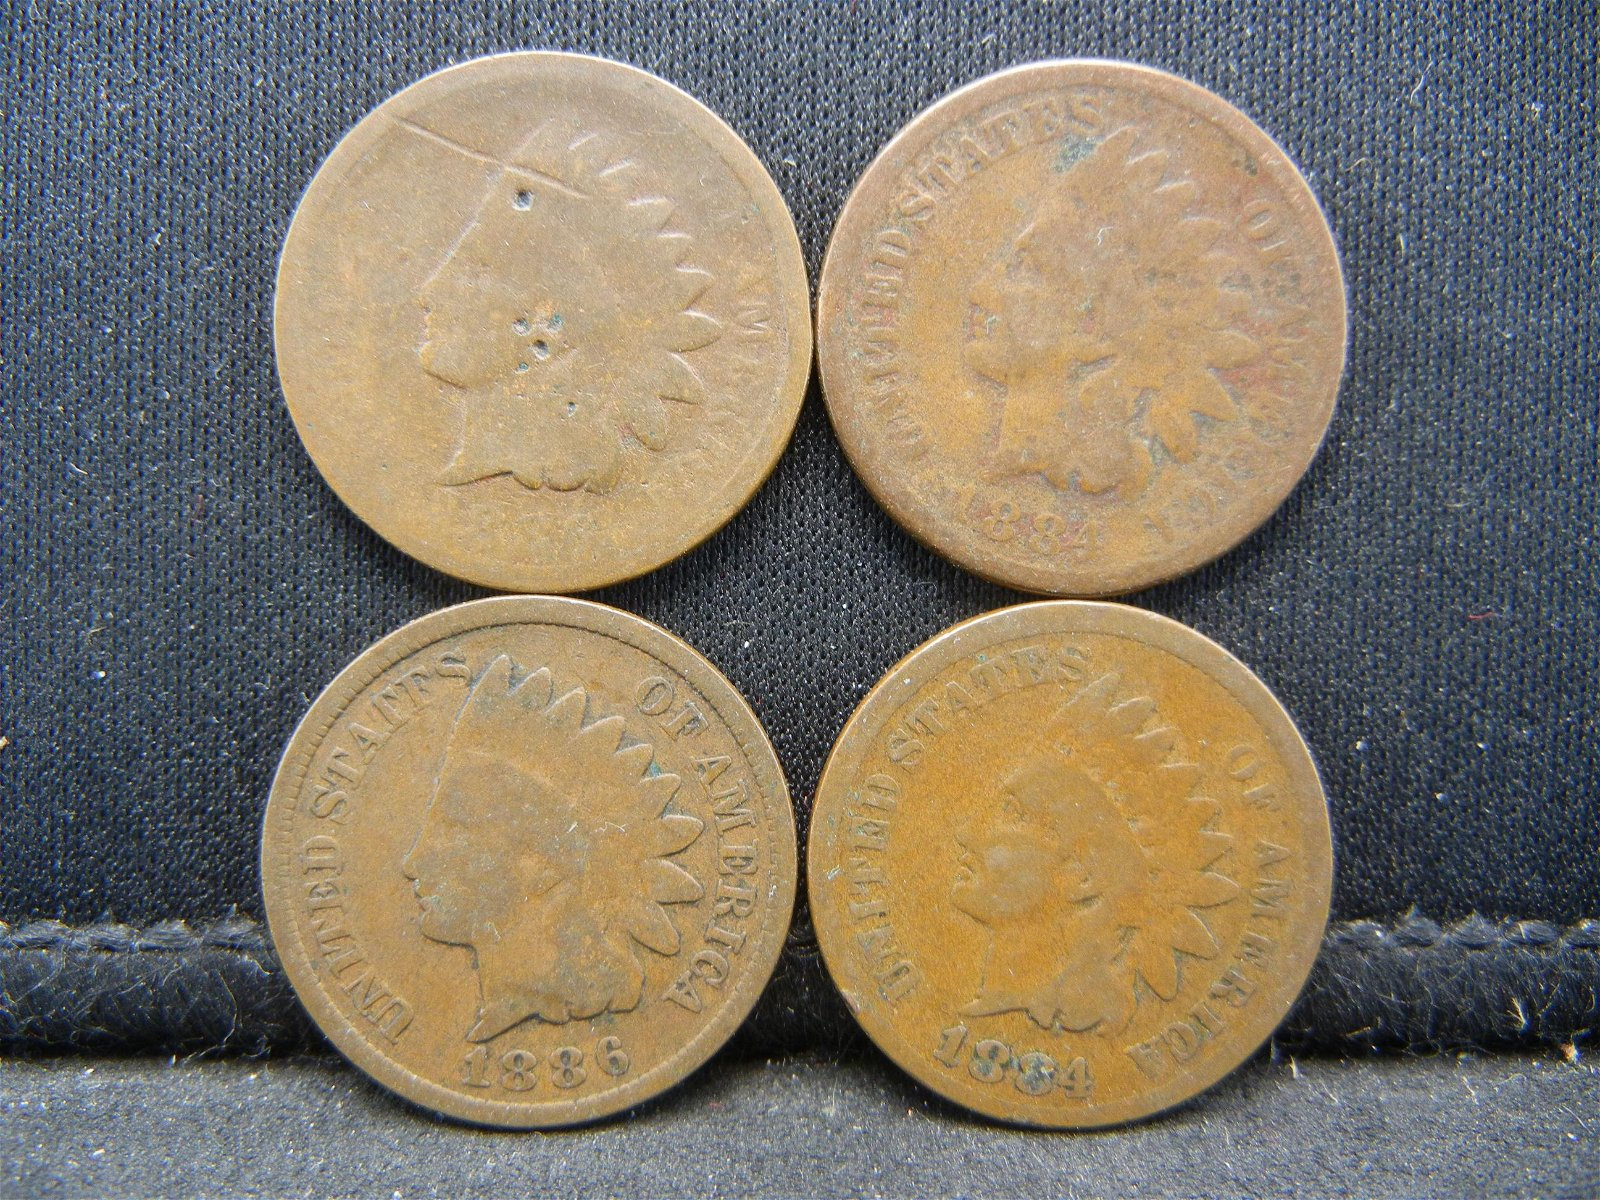 (2) 1884 and (2) 1886 Indian Head Cents ave Circ